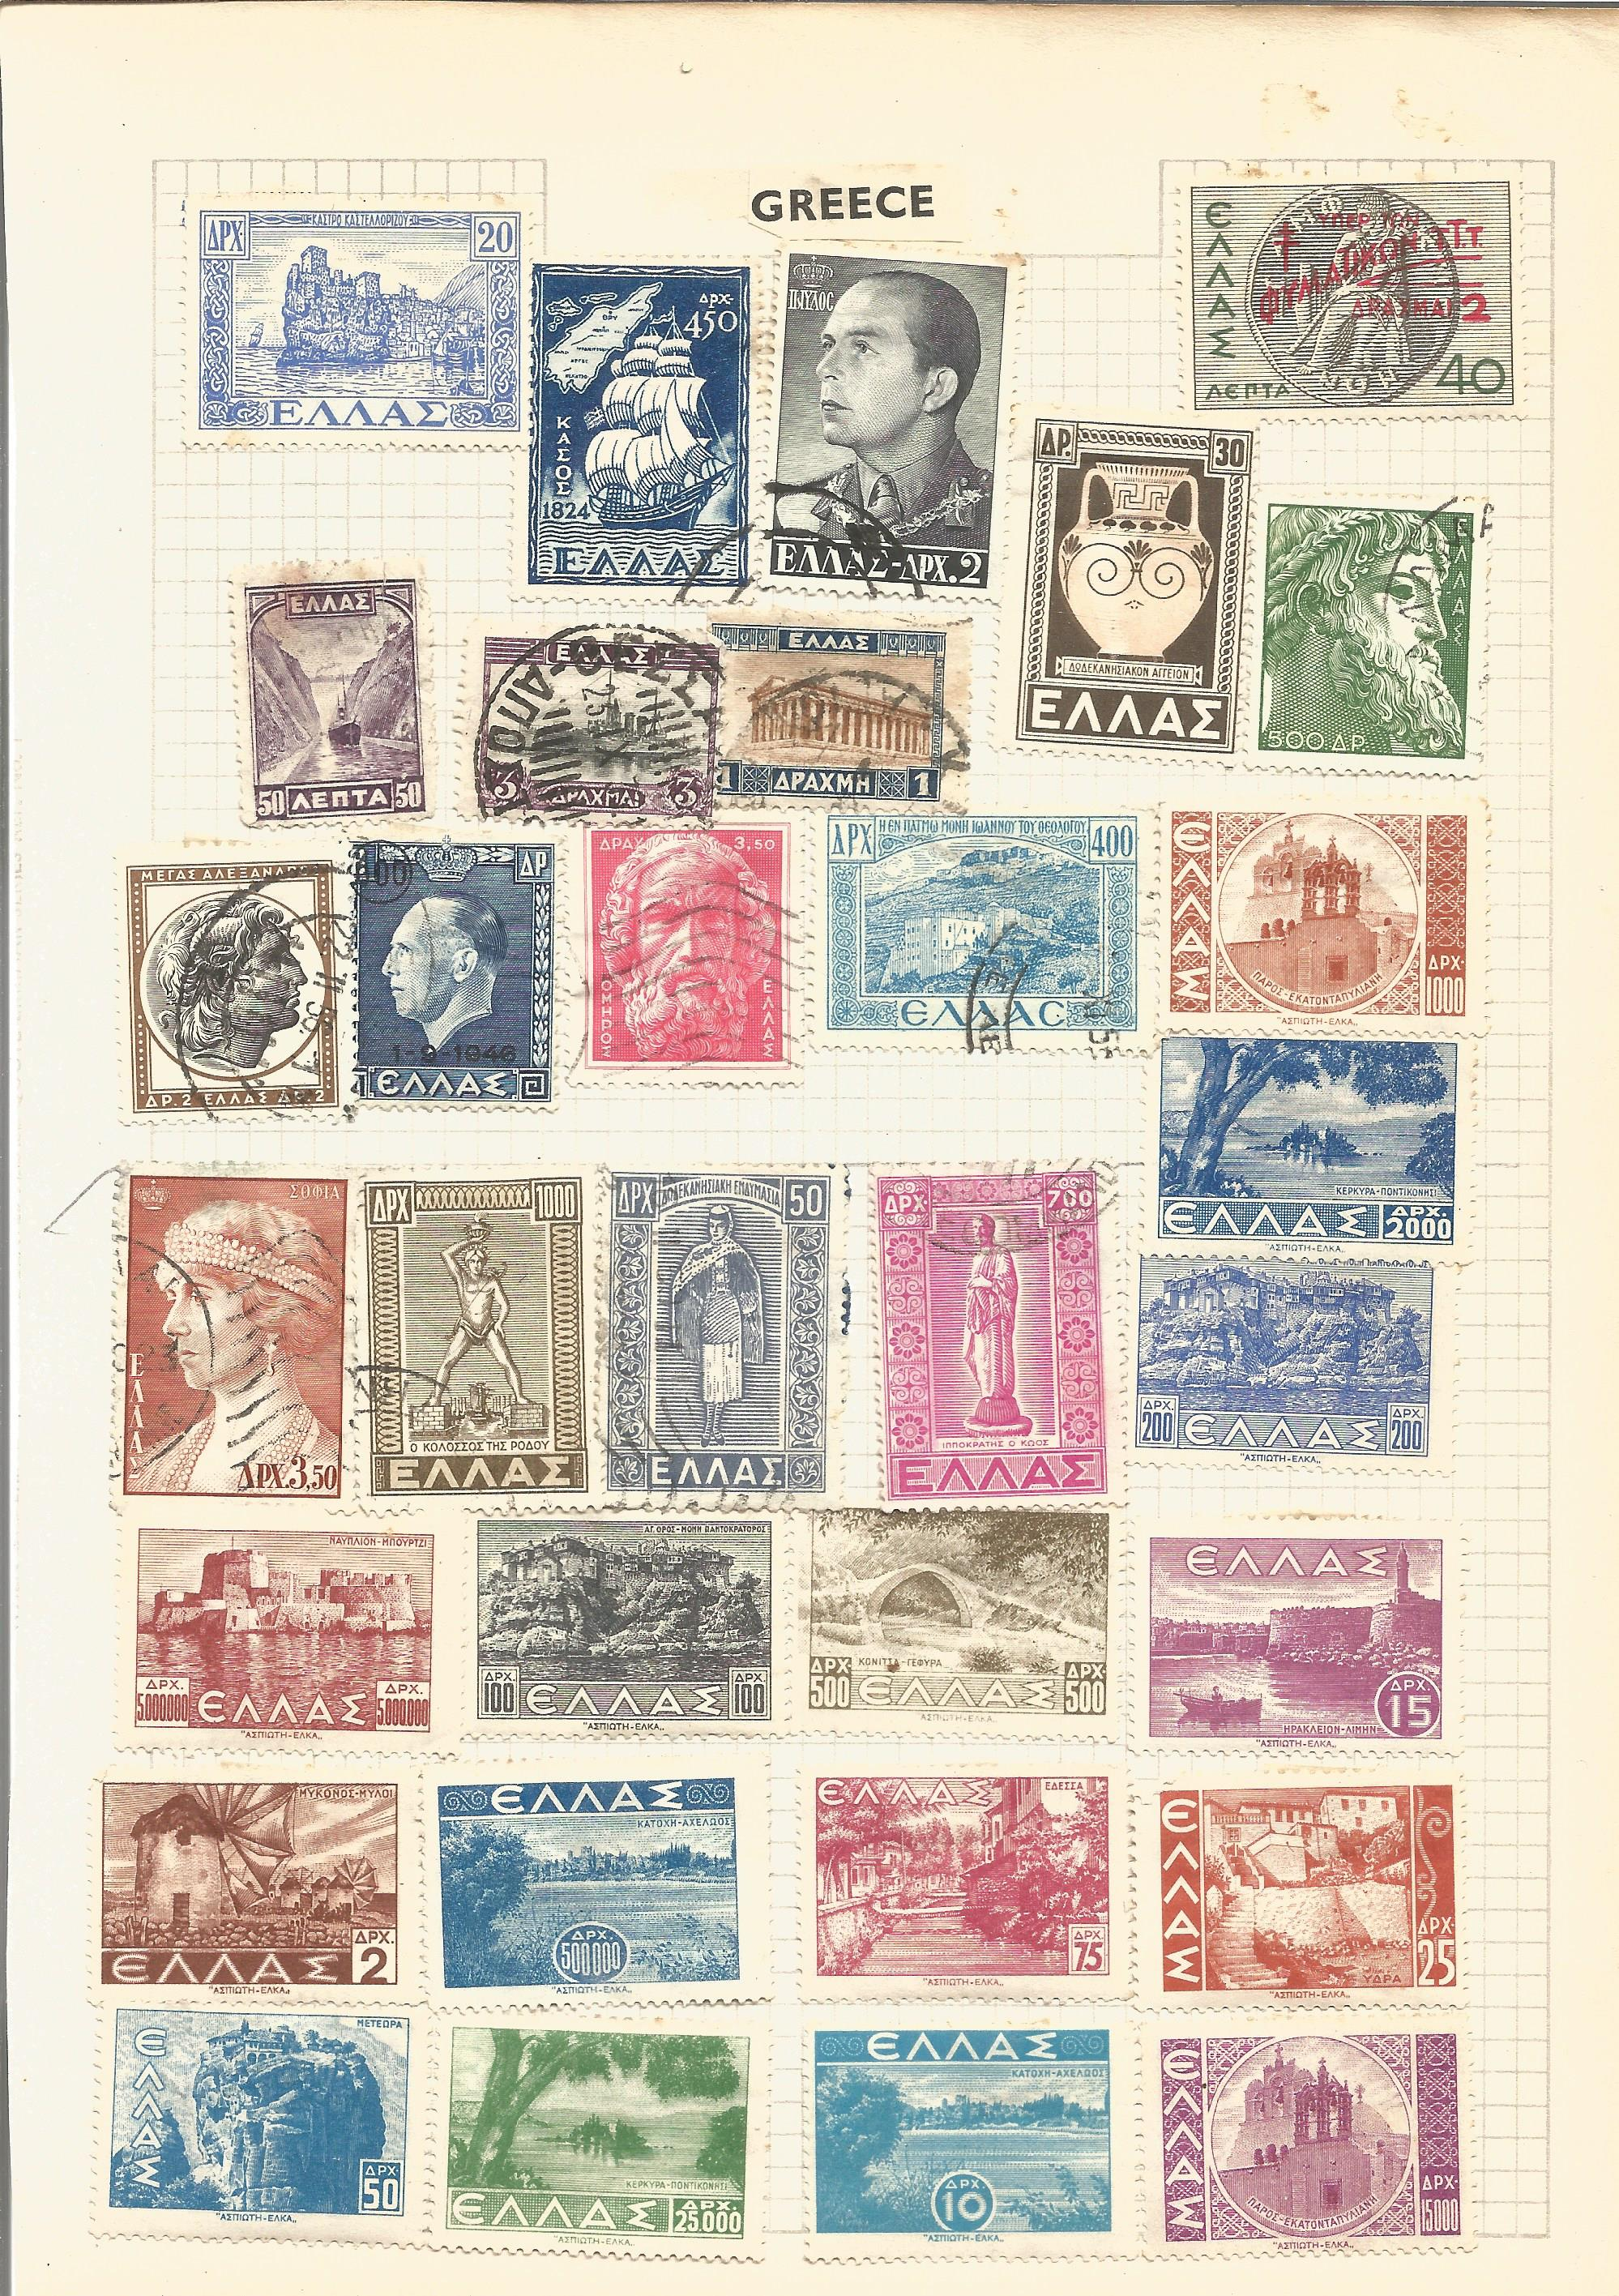 European stamp collection on 8 loose album pages. Contains Belgium, Greece, Italy, Denmark and